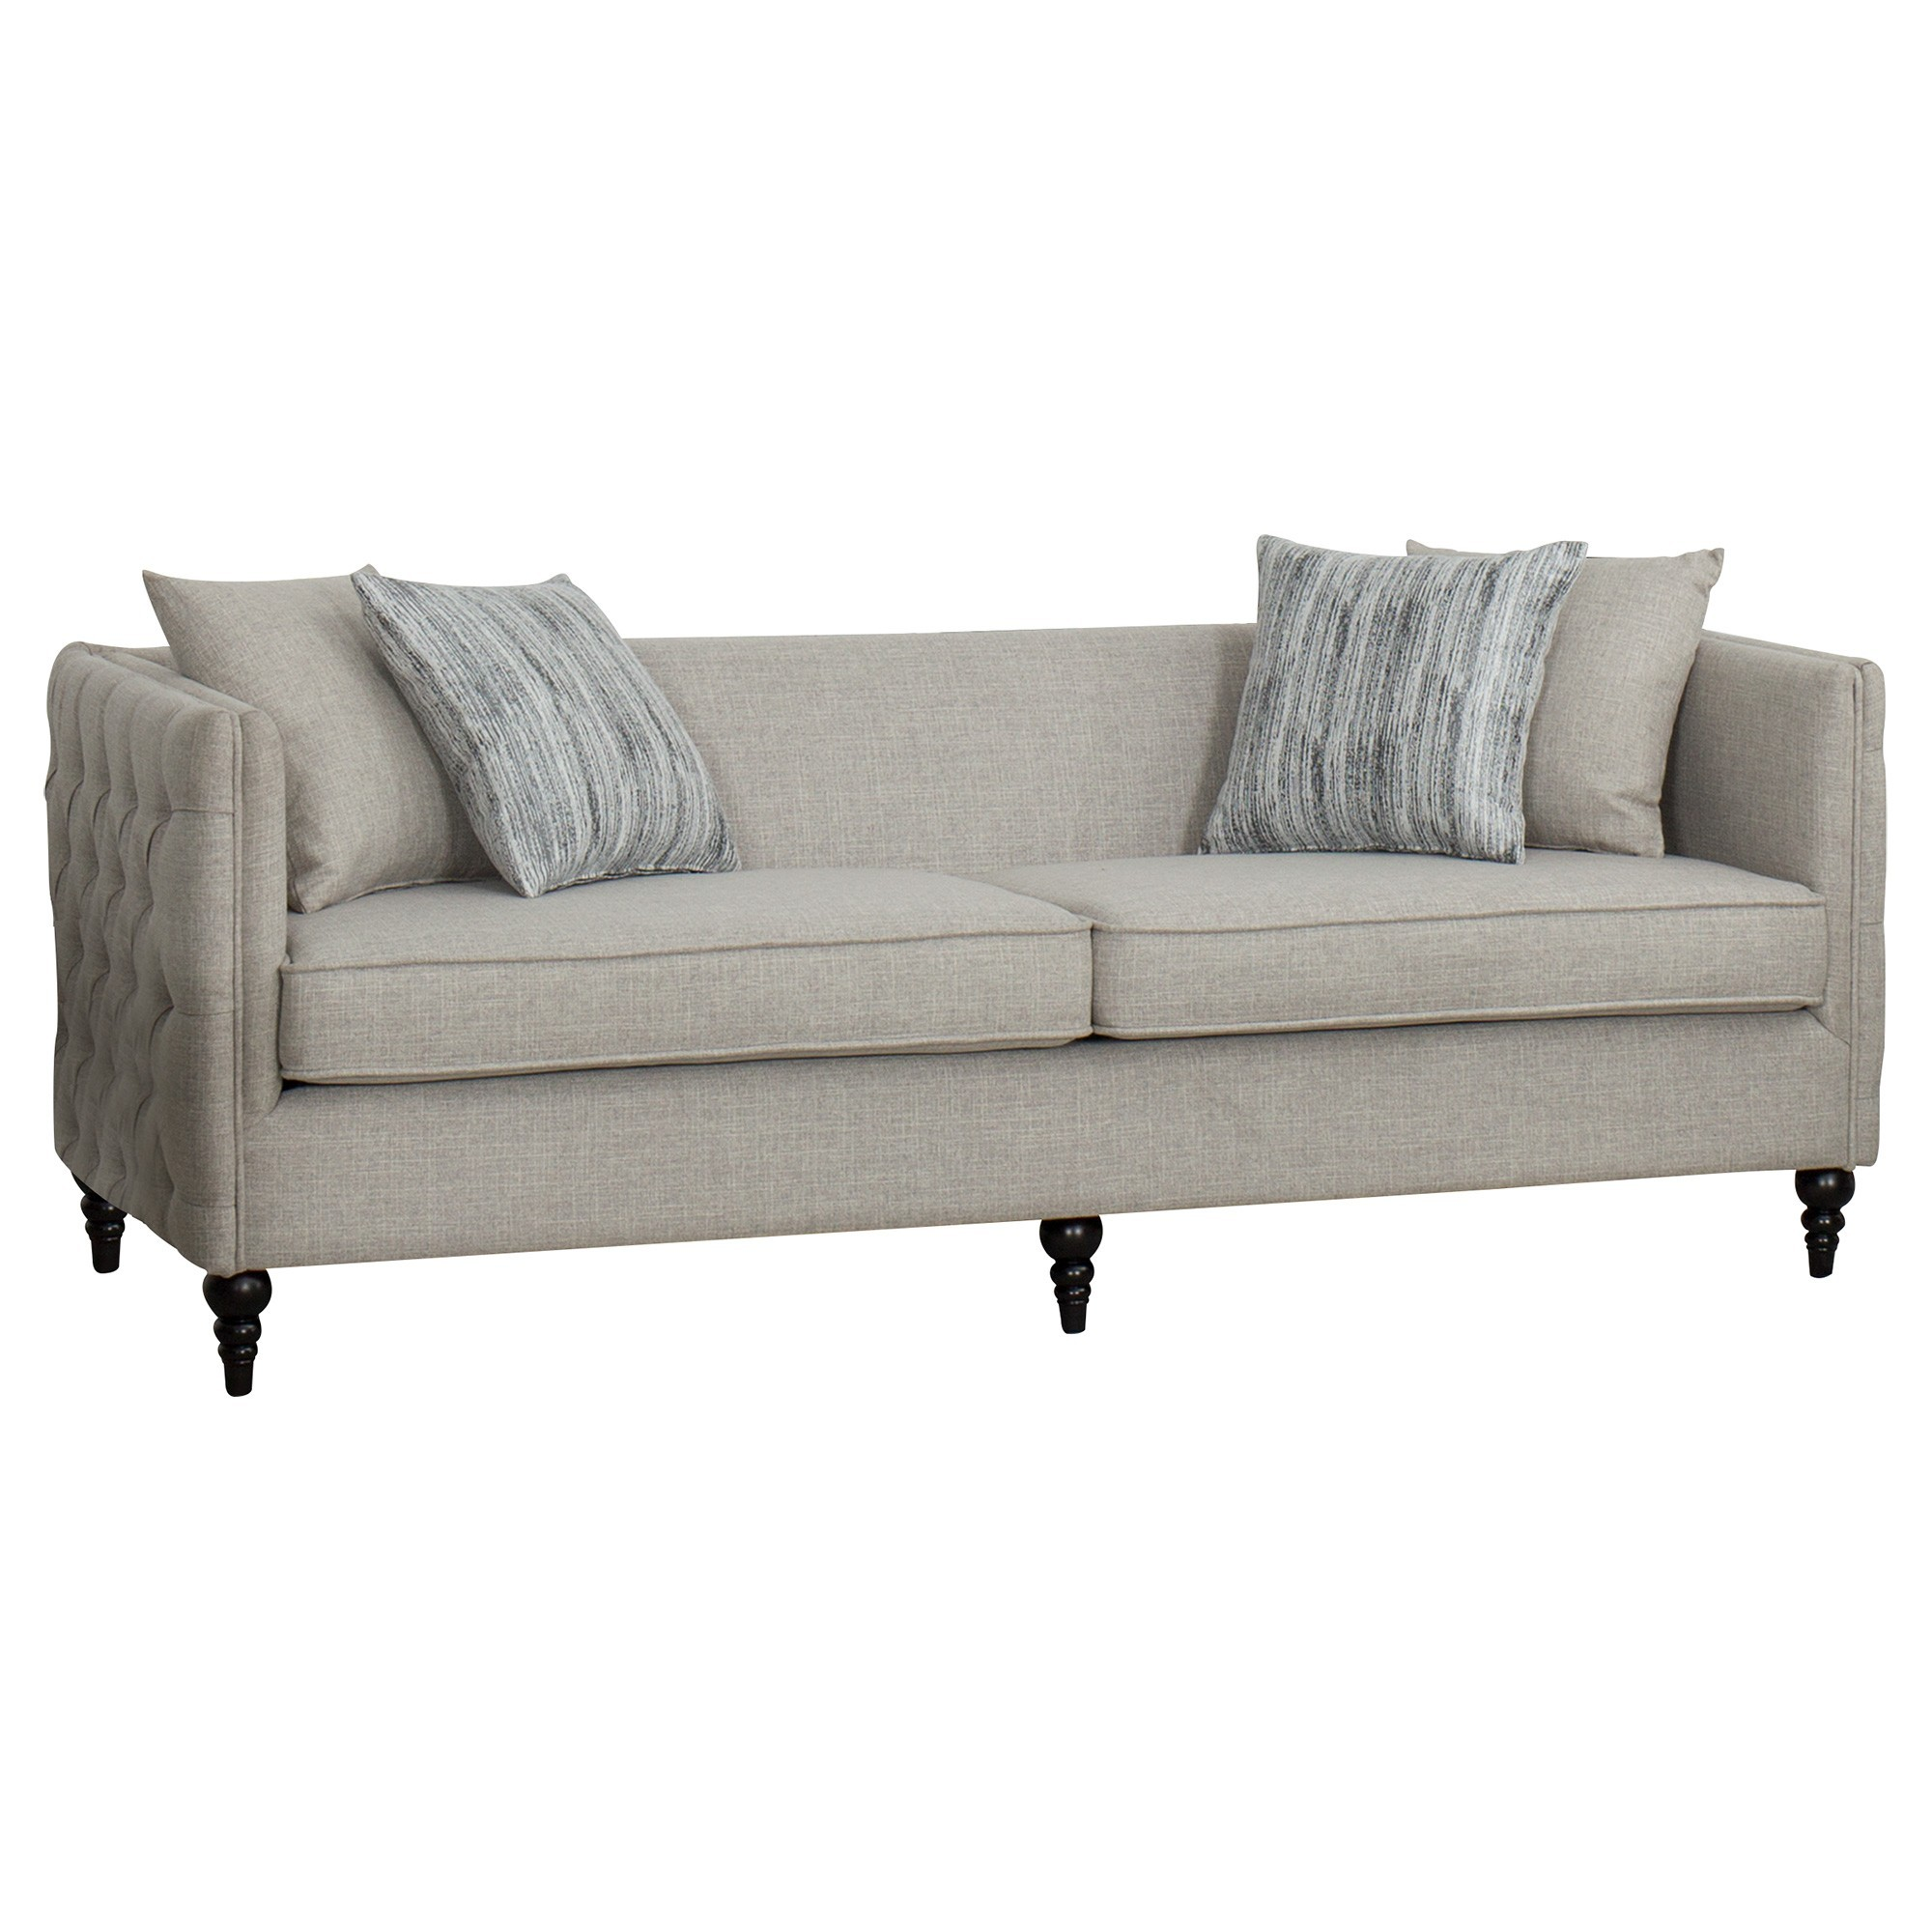 Vitoria Tufted Fabric 3 Seater Sofa